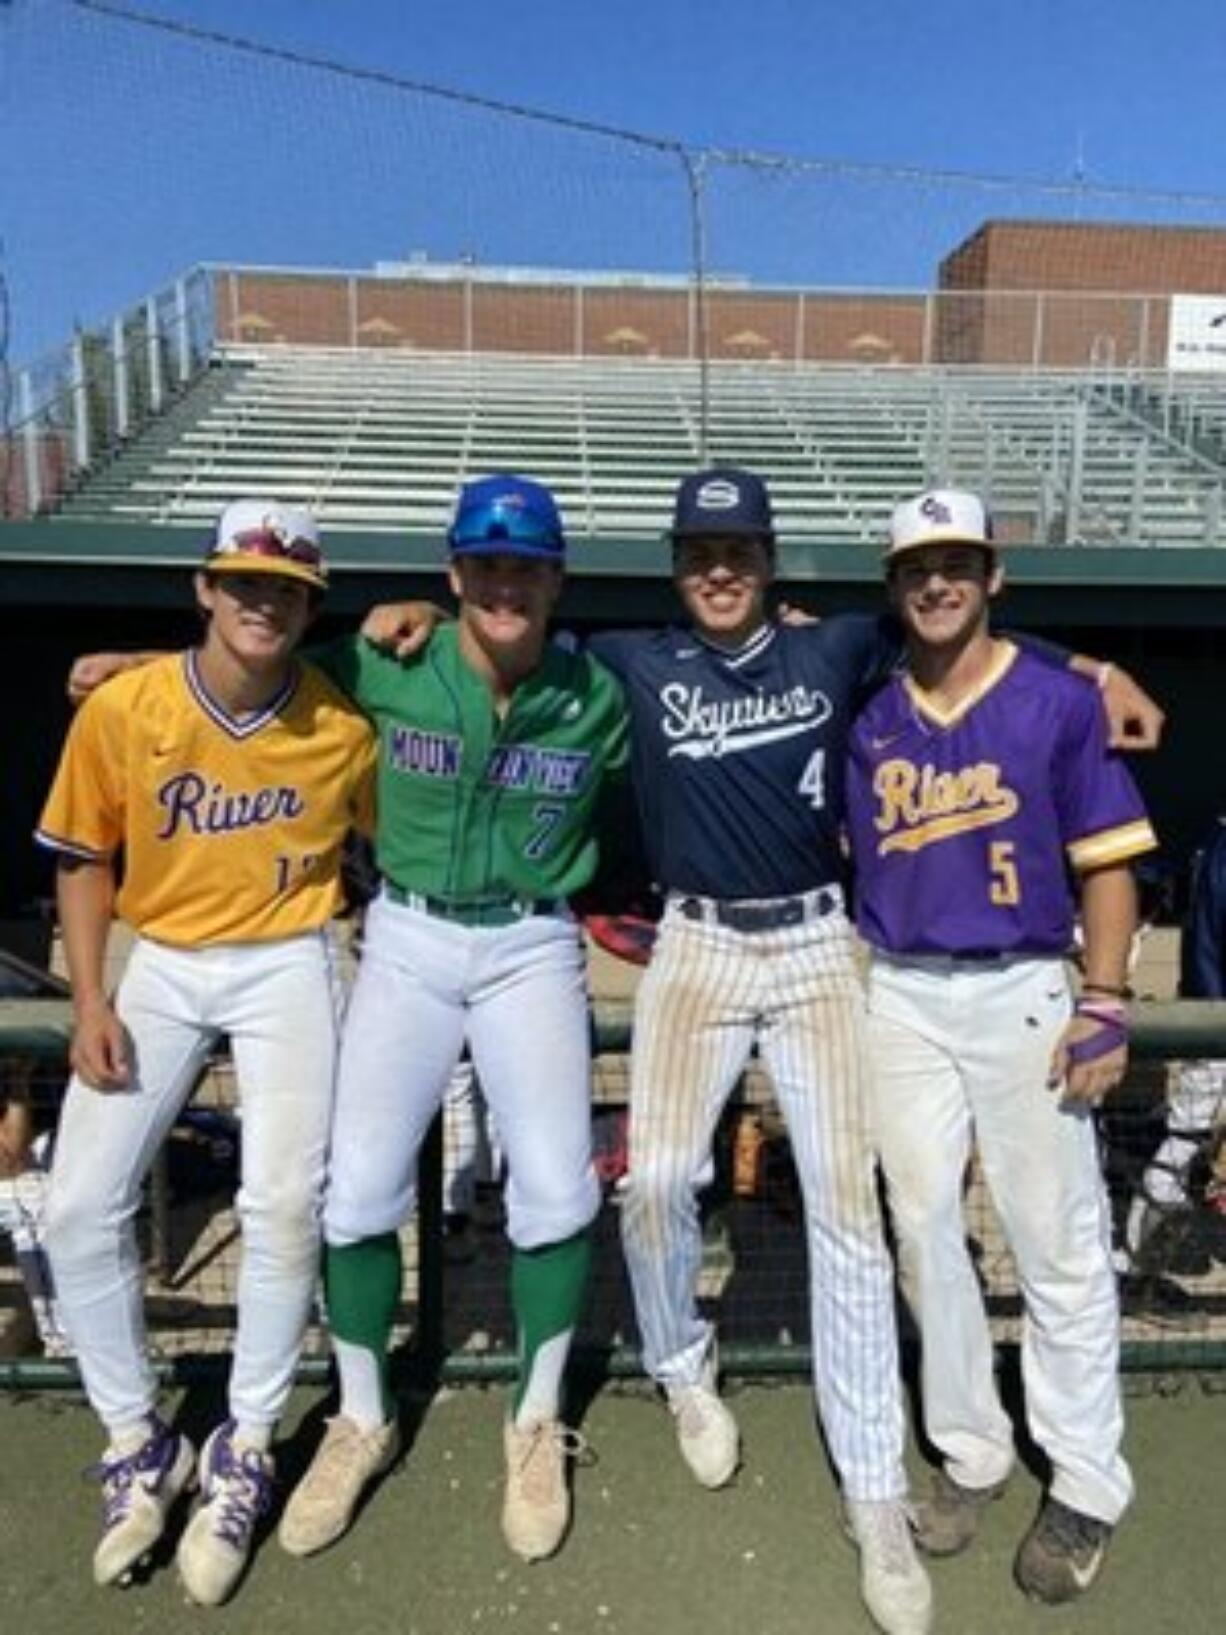 From left, Columbia River's Sawyer Parkin, Mountain View's Riley McCarthy, Skyview's Kyle Olson and Columbia River's Nick Alder played for Team Adams at the Washington Senior All-State series in Yakima on July 10-11.